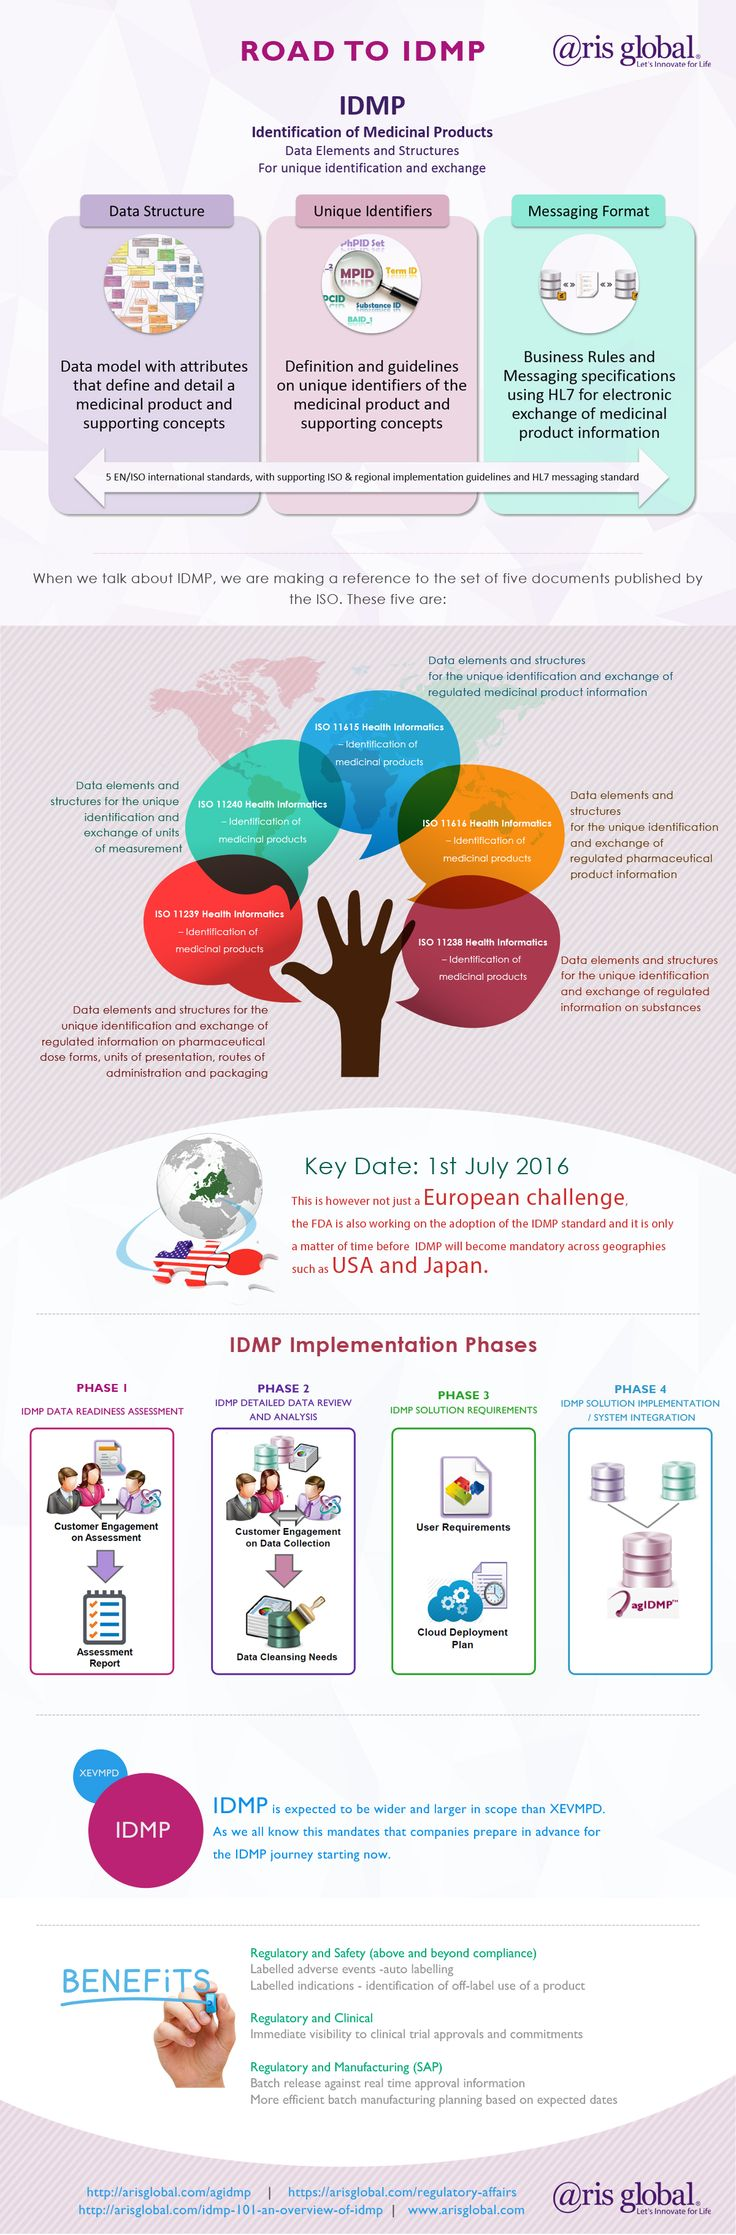 supply chain management systems see more road to idmp infographics